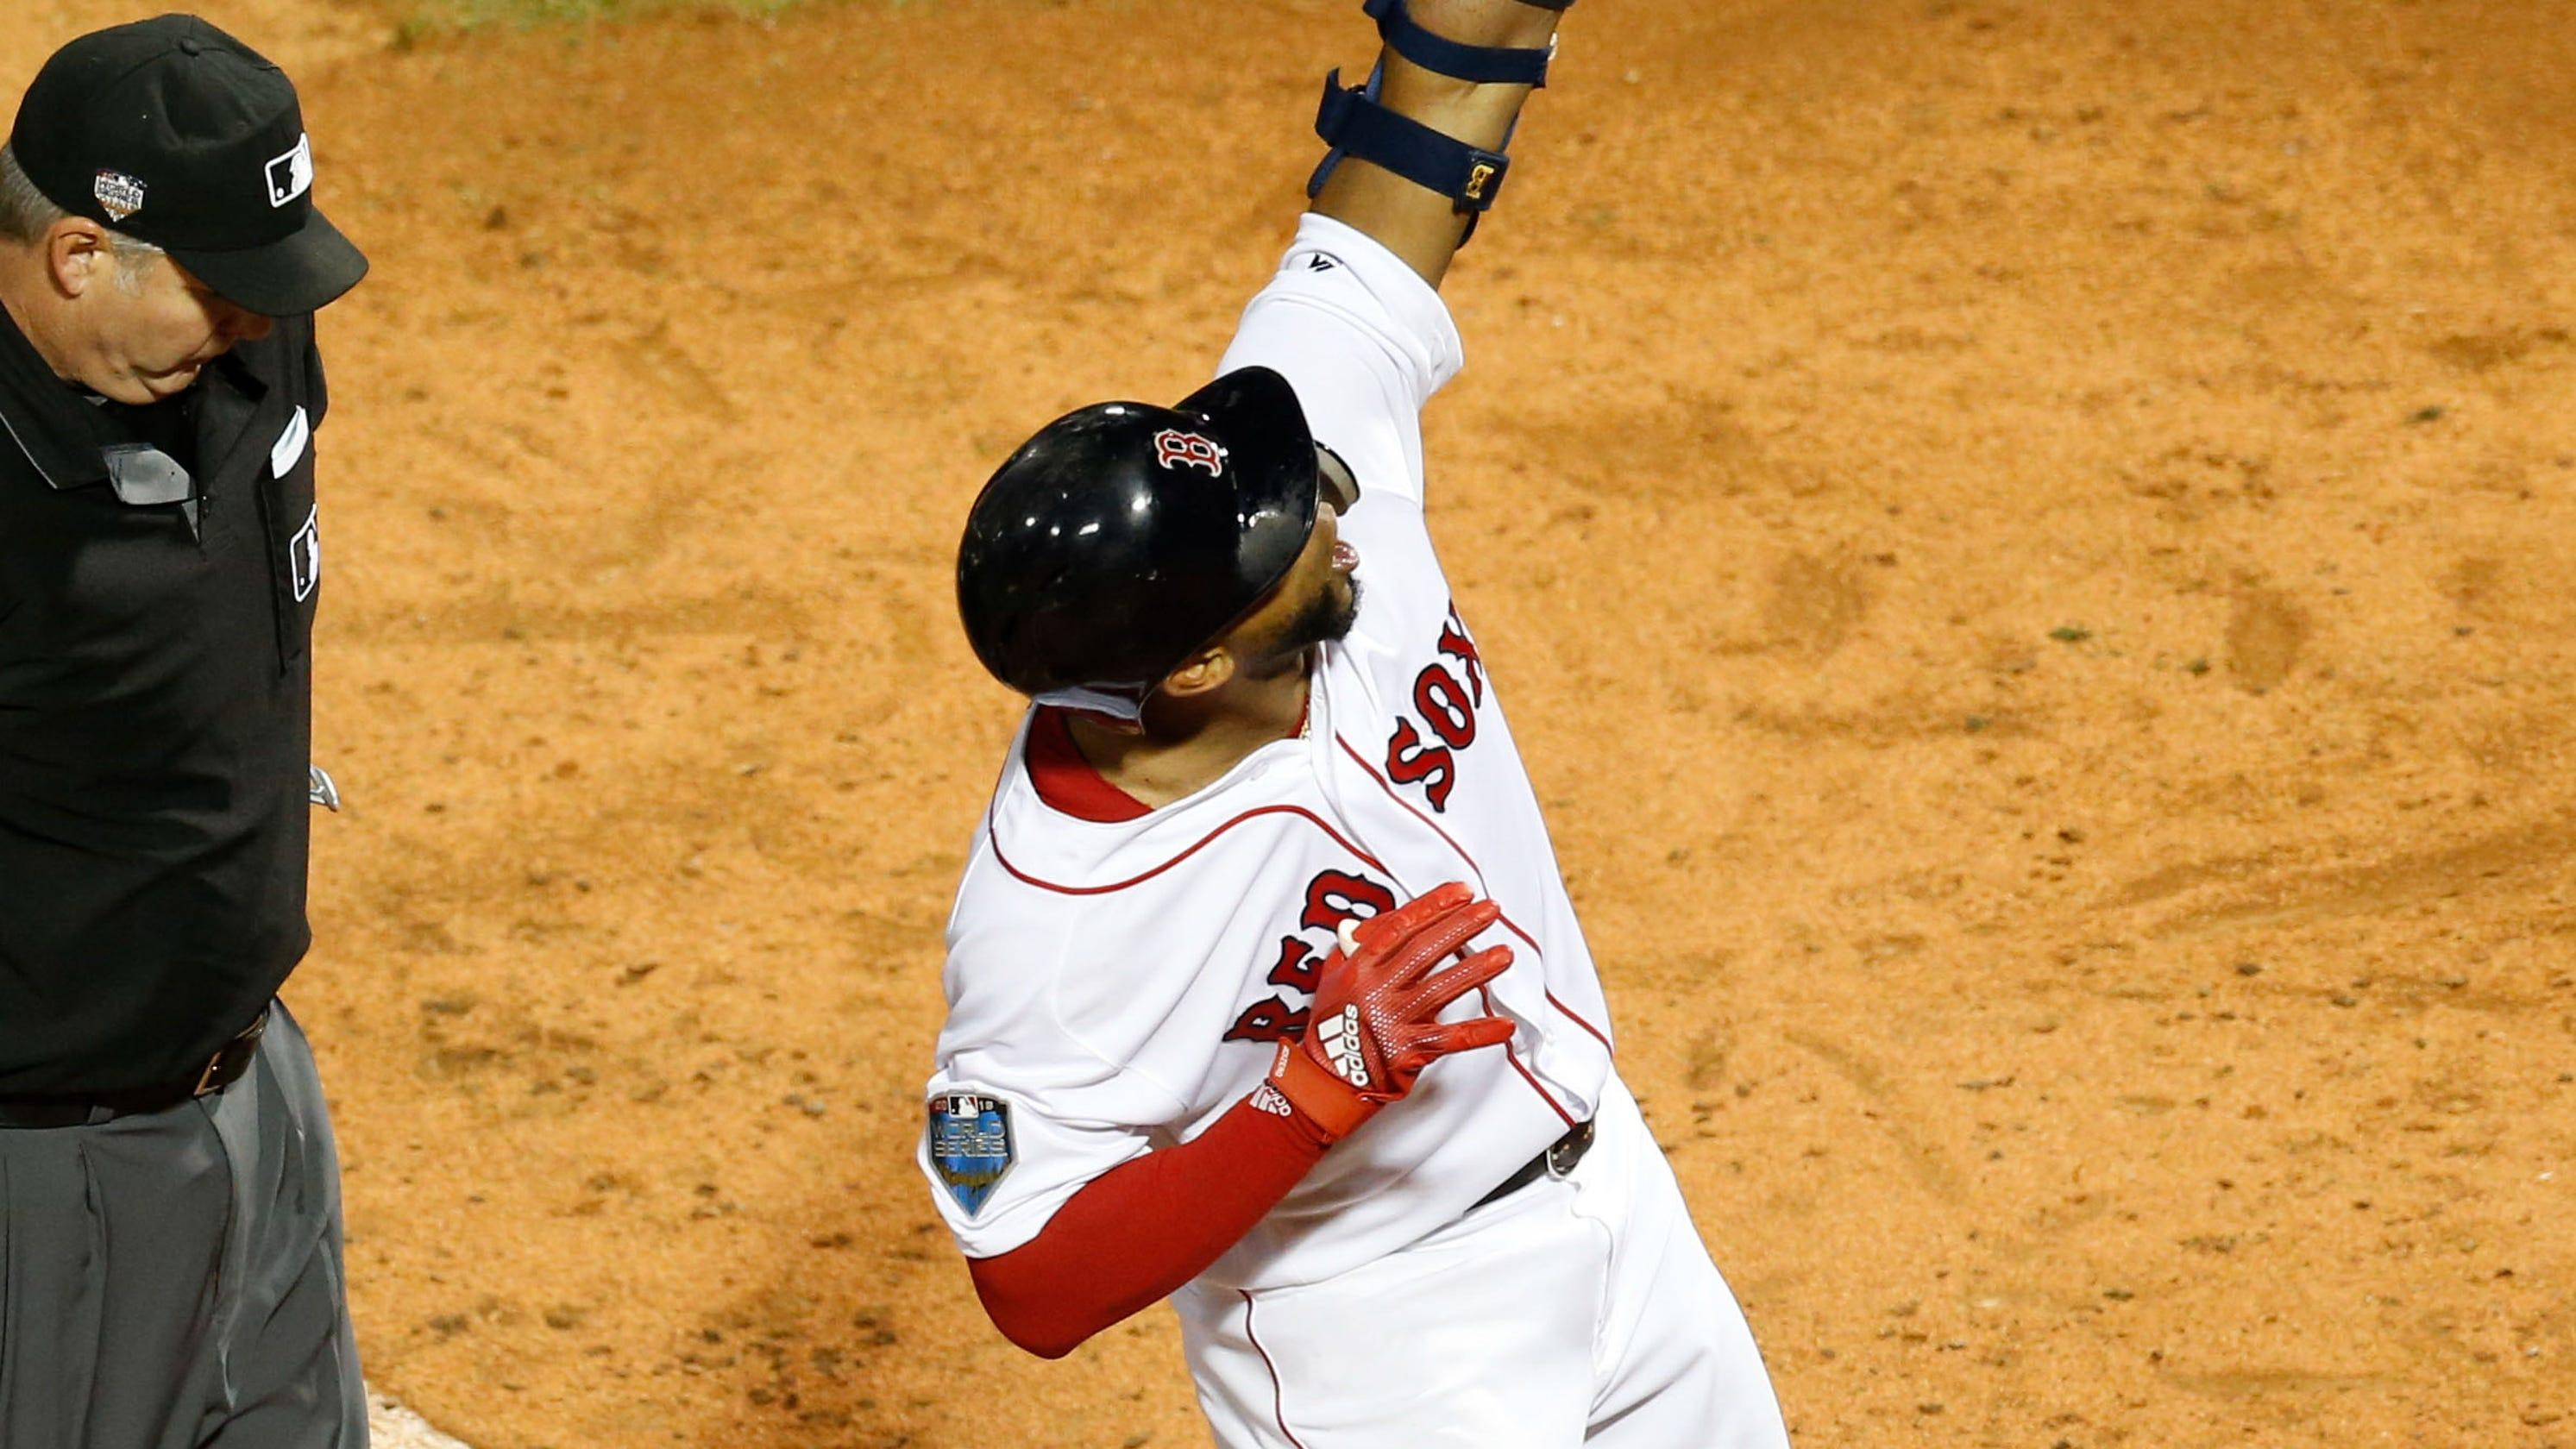 05577beaf1b World Series  Red Sox take Game 1 over Dodgers in battle of aces